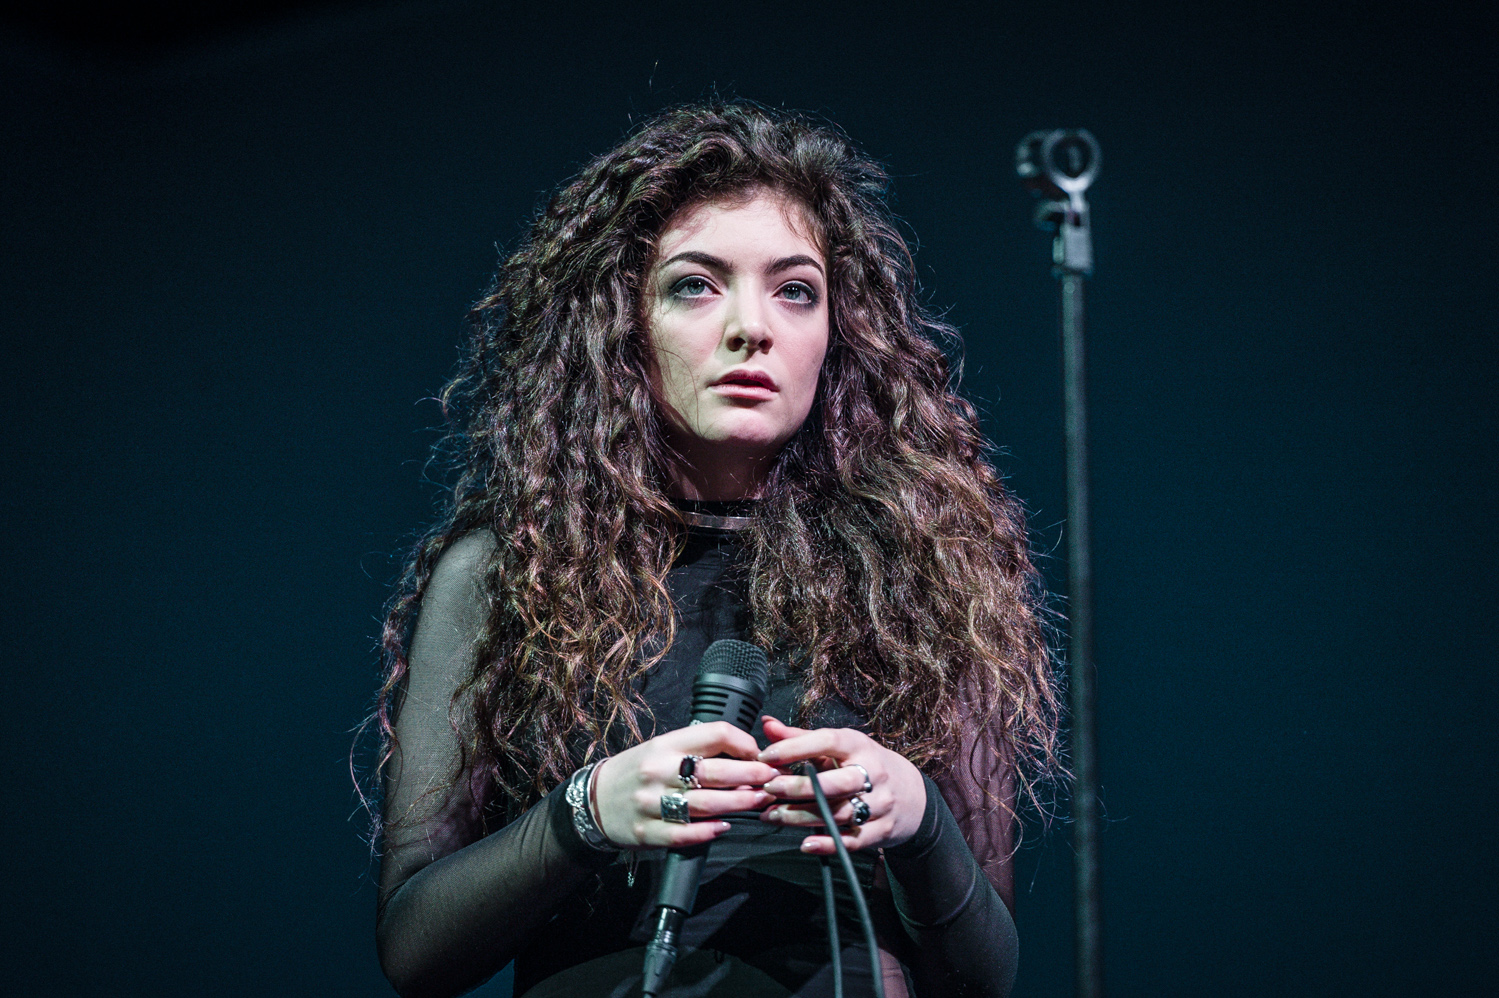 Lorde iHeart Radio_005_photo_©2013 Steve Dykes.jpg